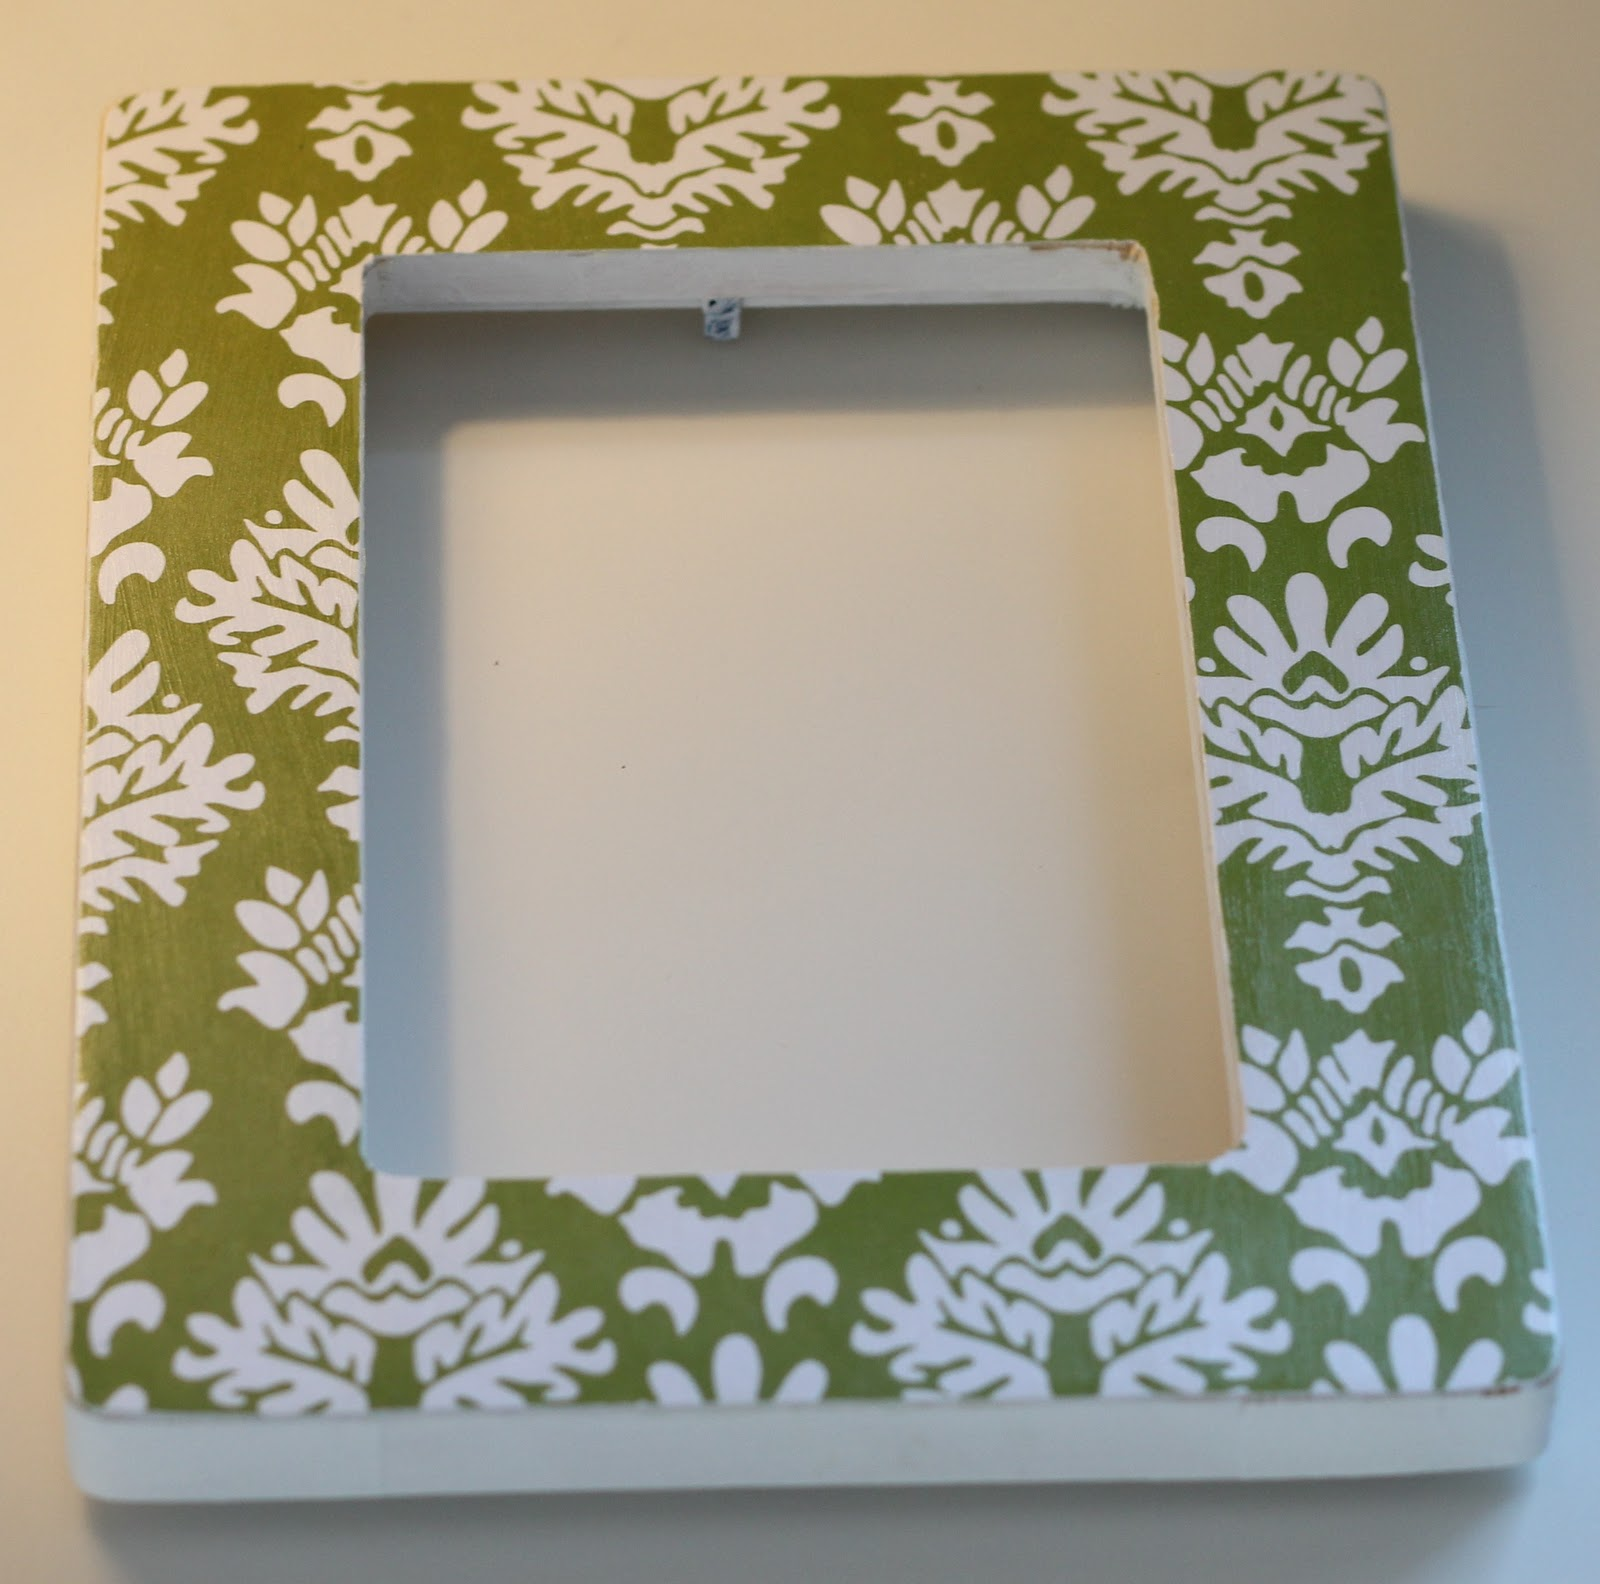 Dill pickle design decoupage frame jeuxipadfo Image collections